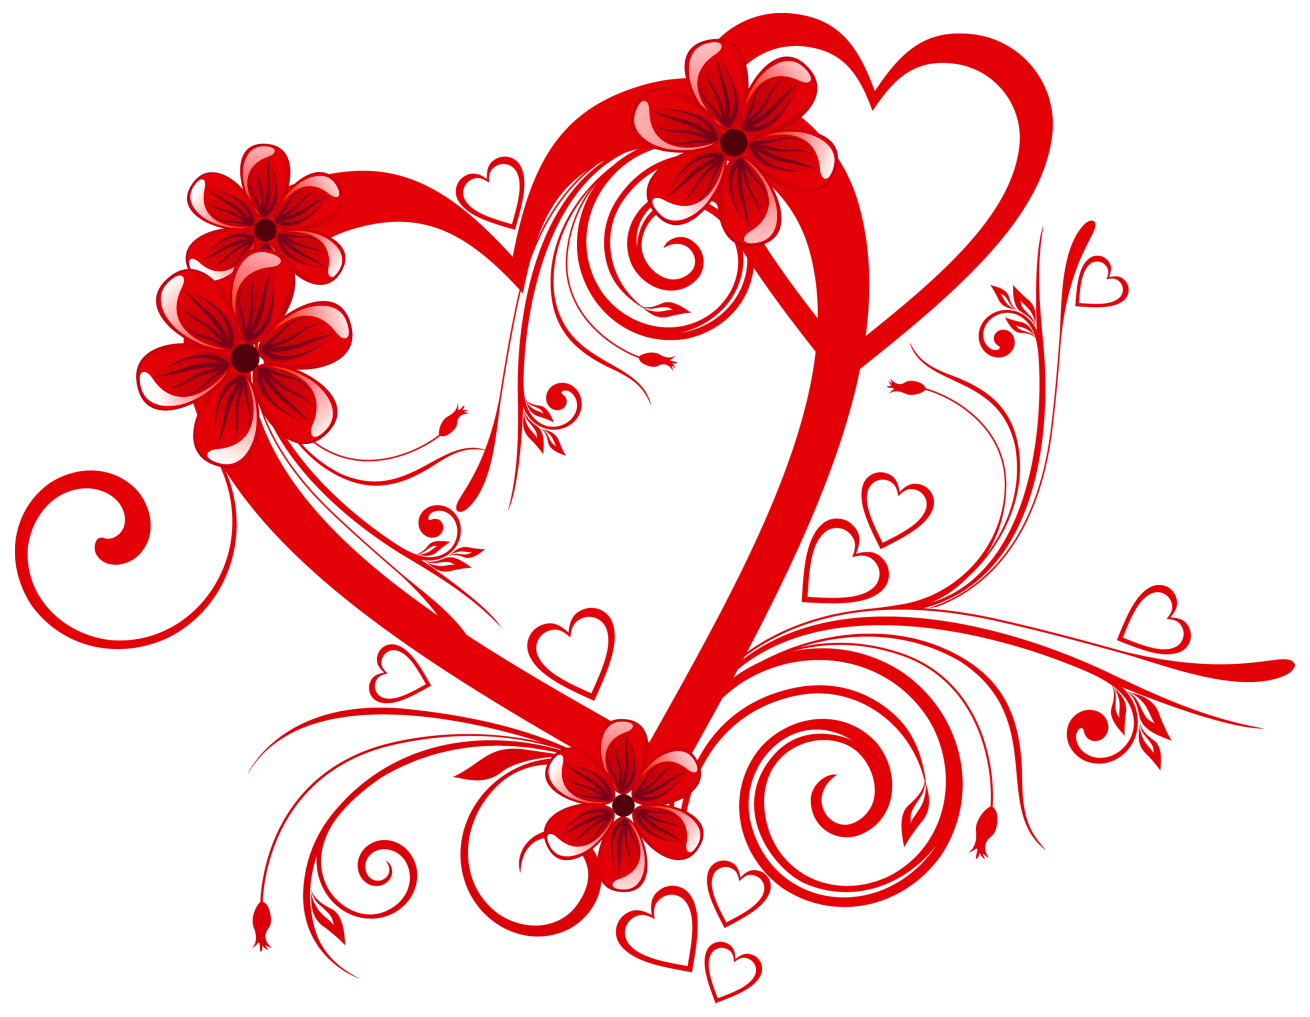 images about Love on